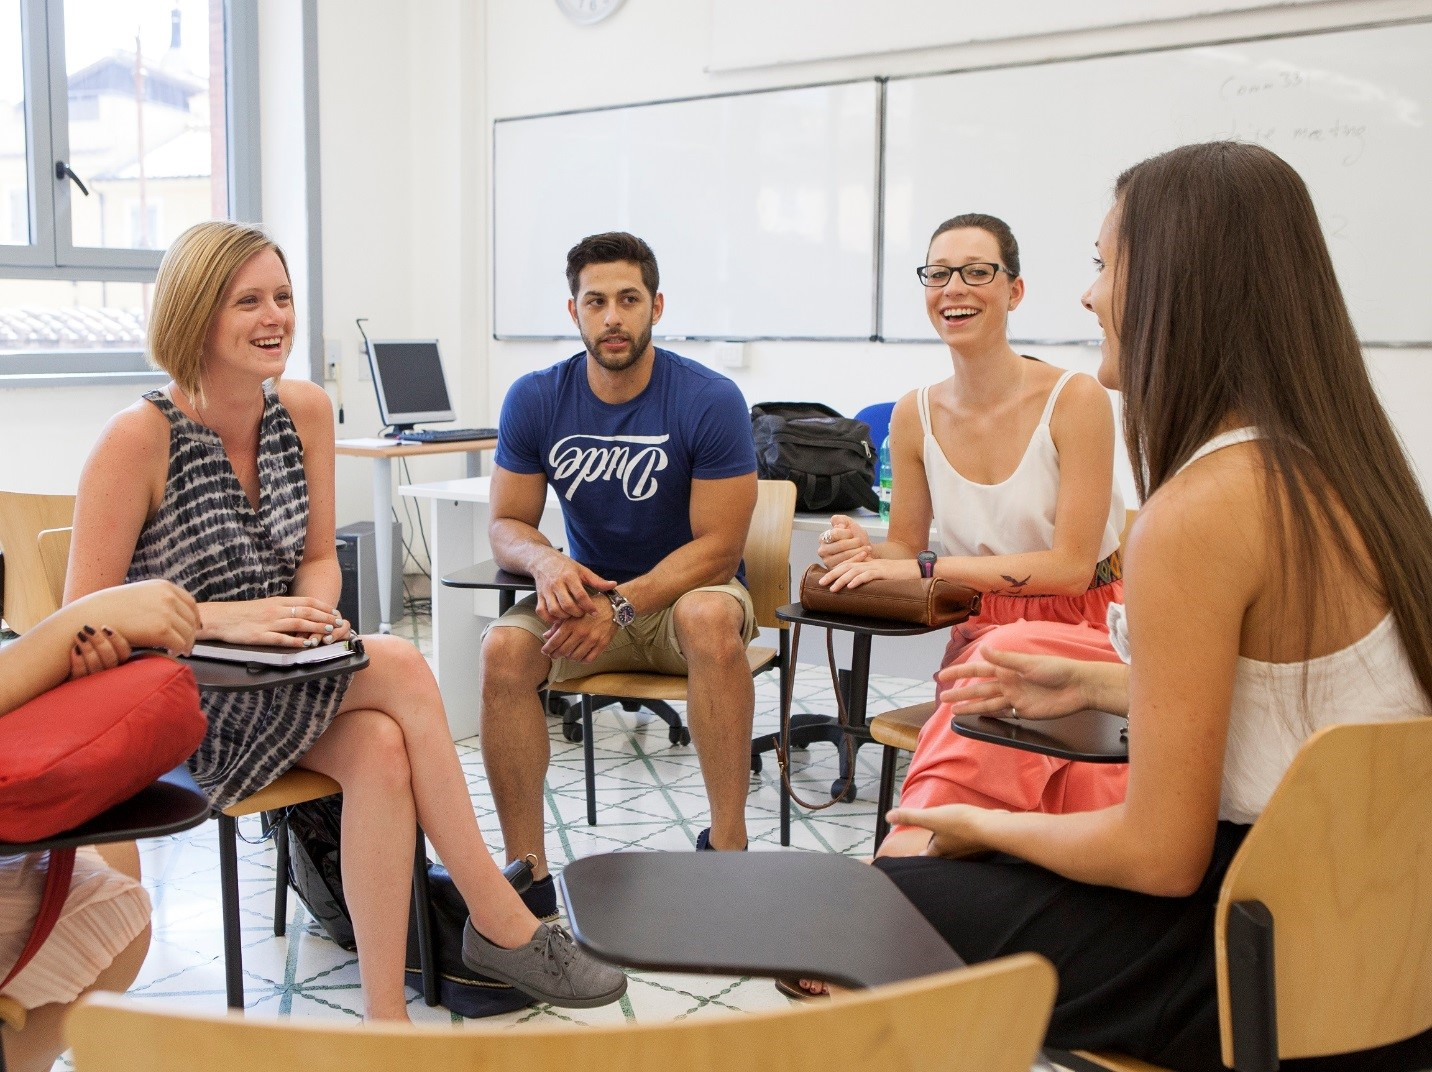 Small class sizes at JCU provide an excellent environment for class discussion